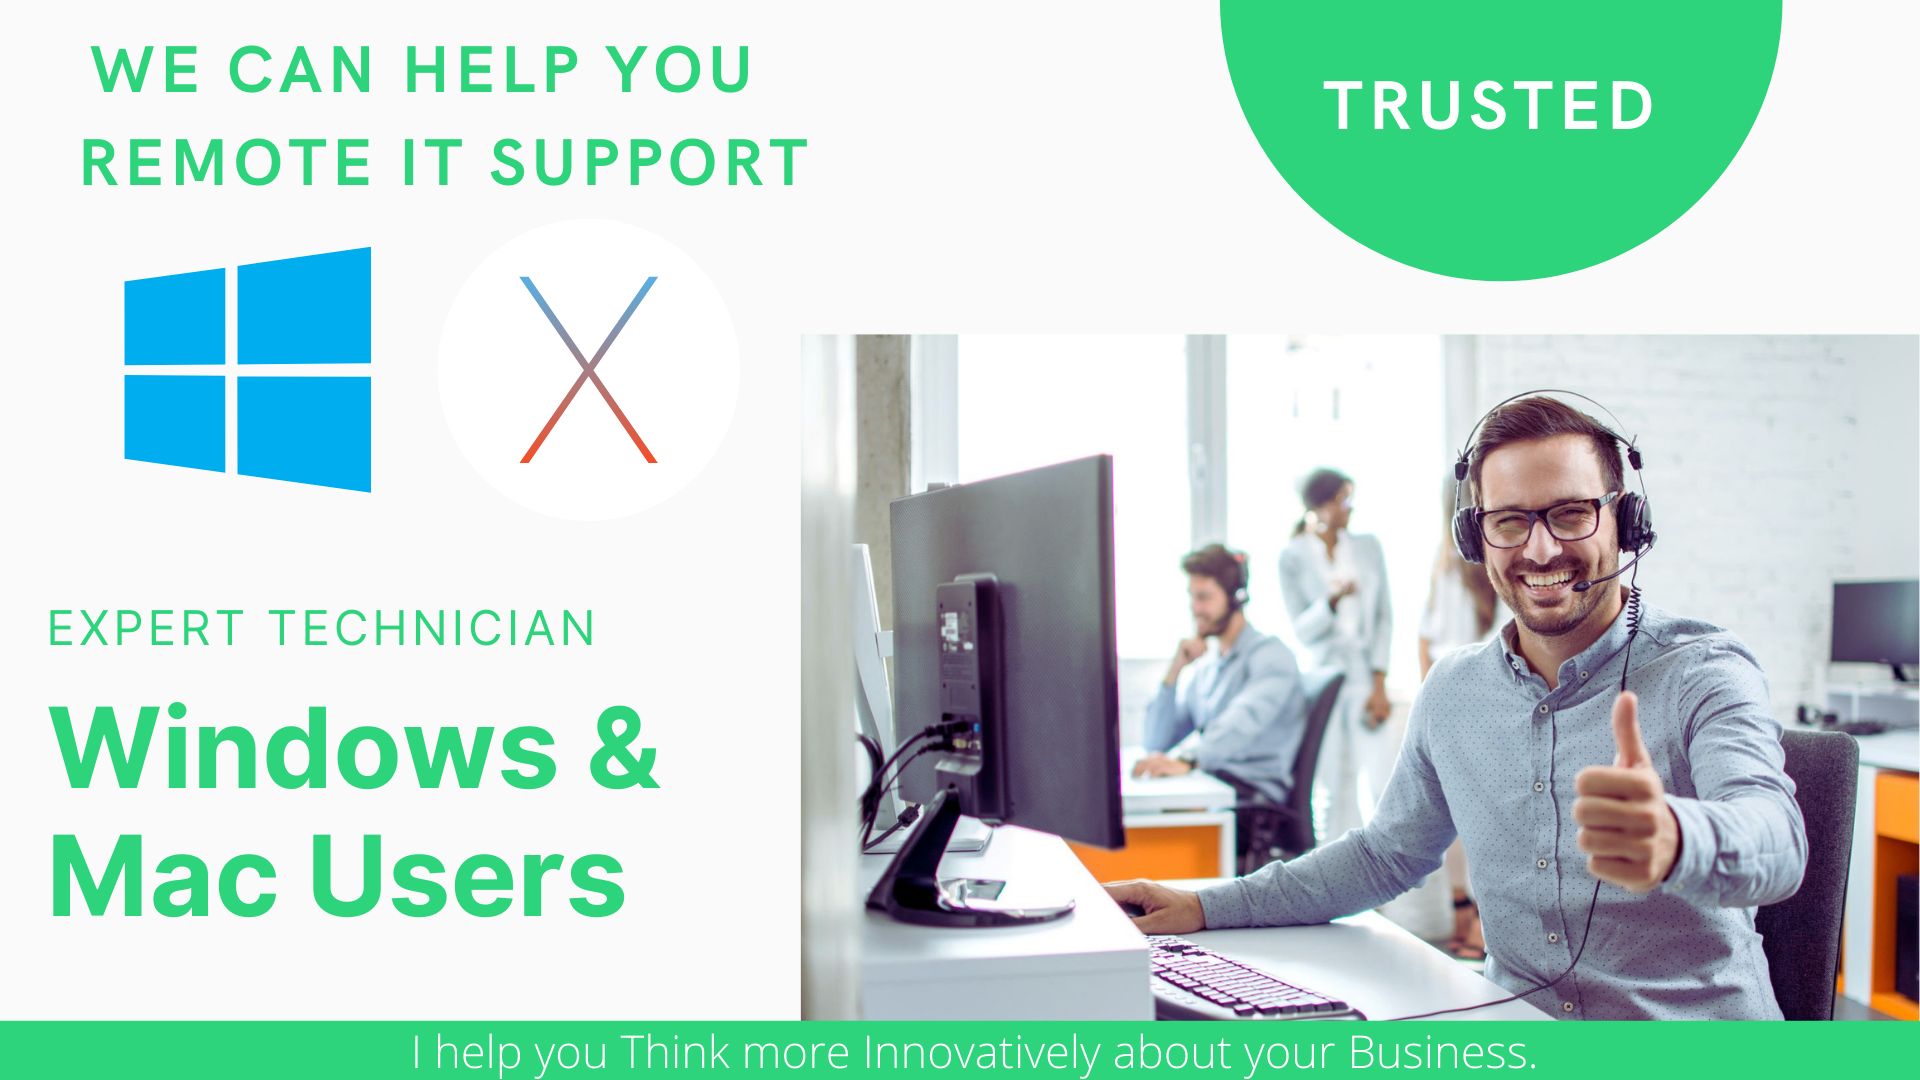 I Will Provide 24/7 Tech Support For Windows & Mac Computers.